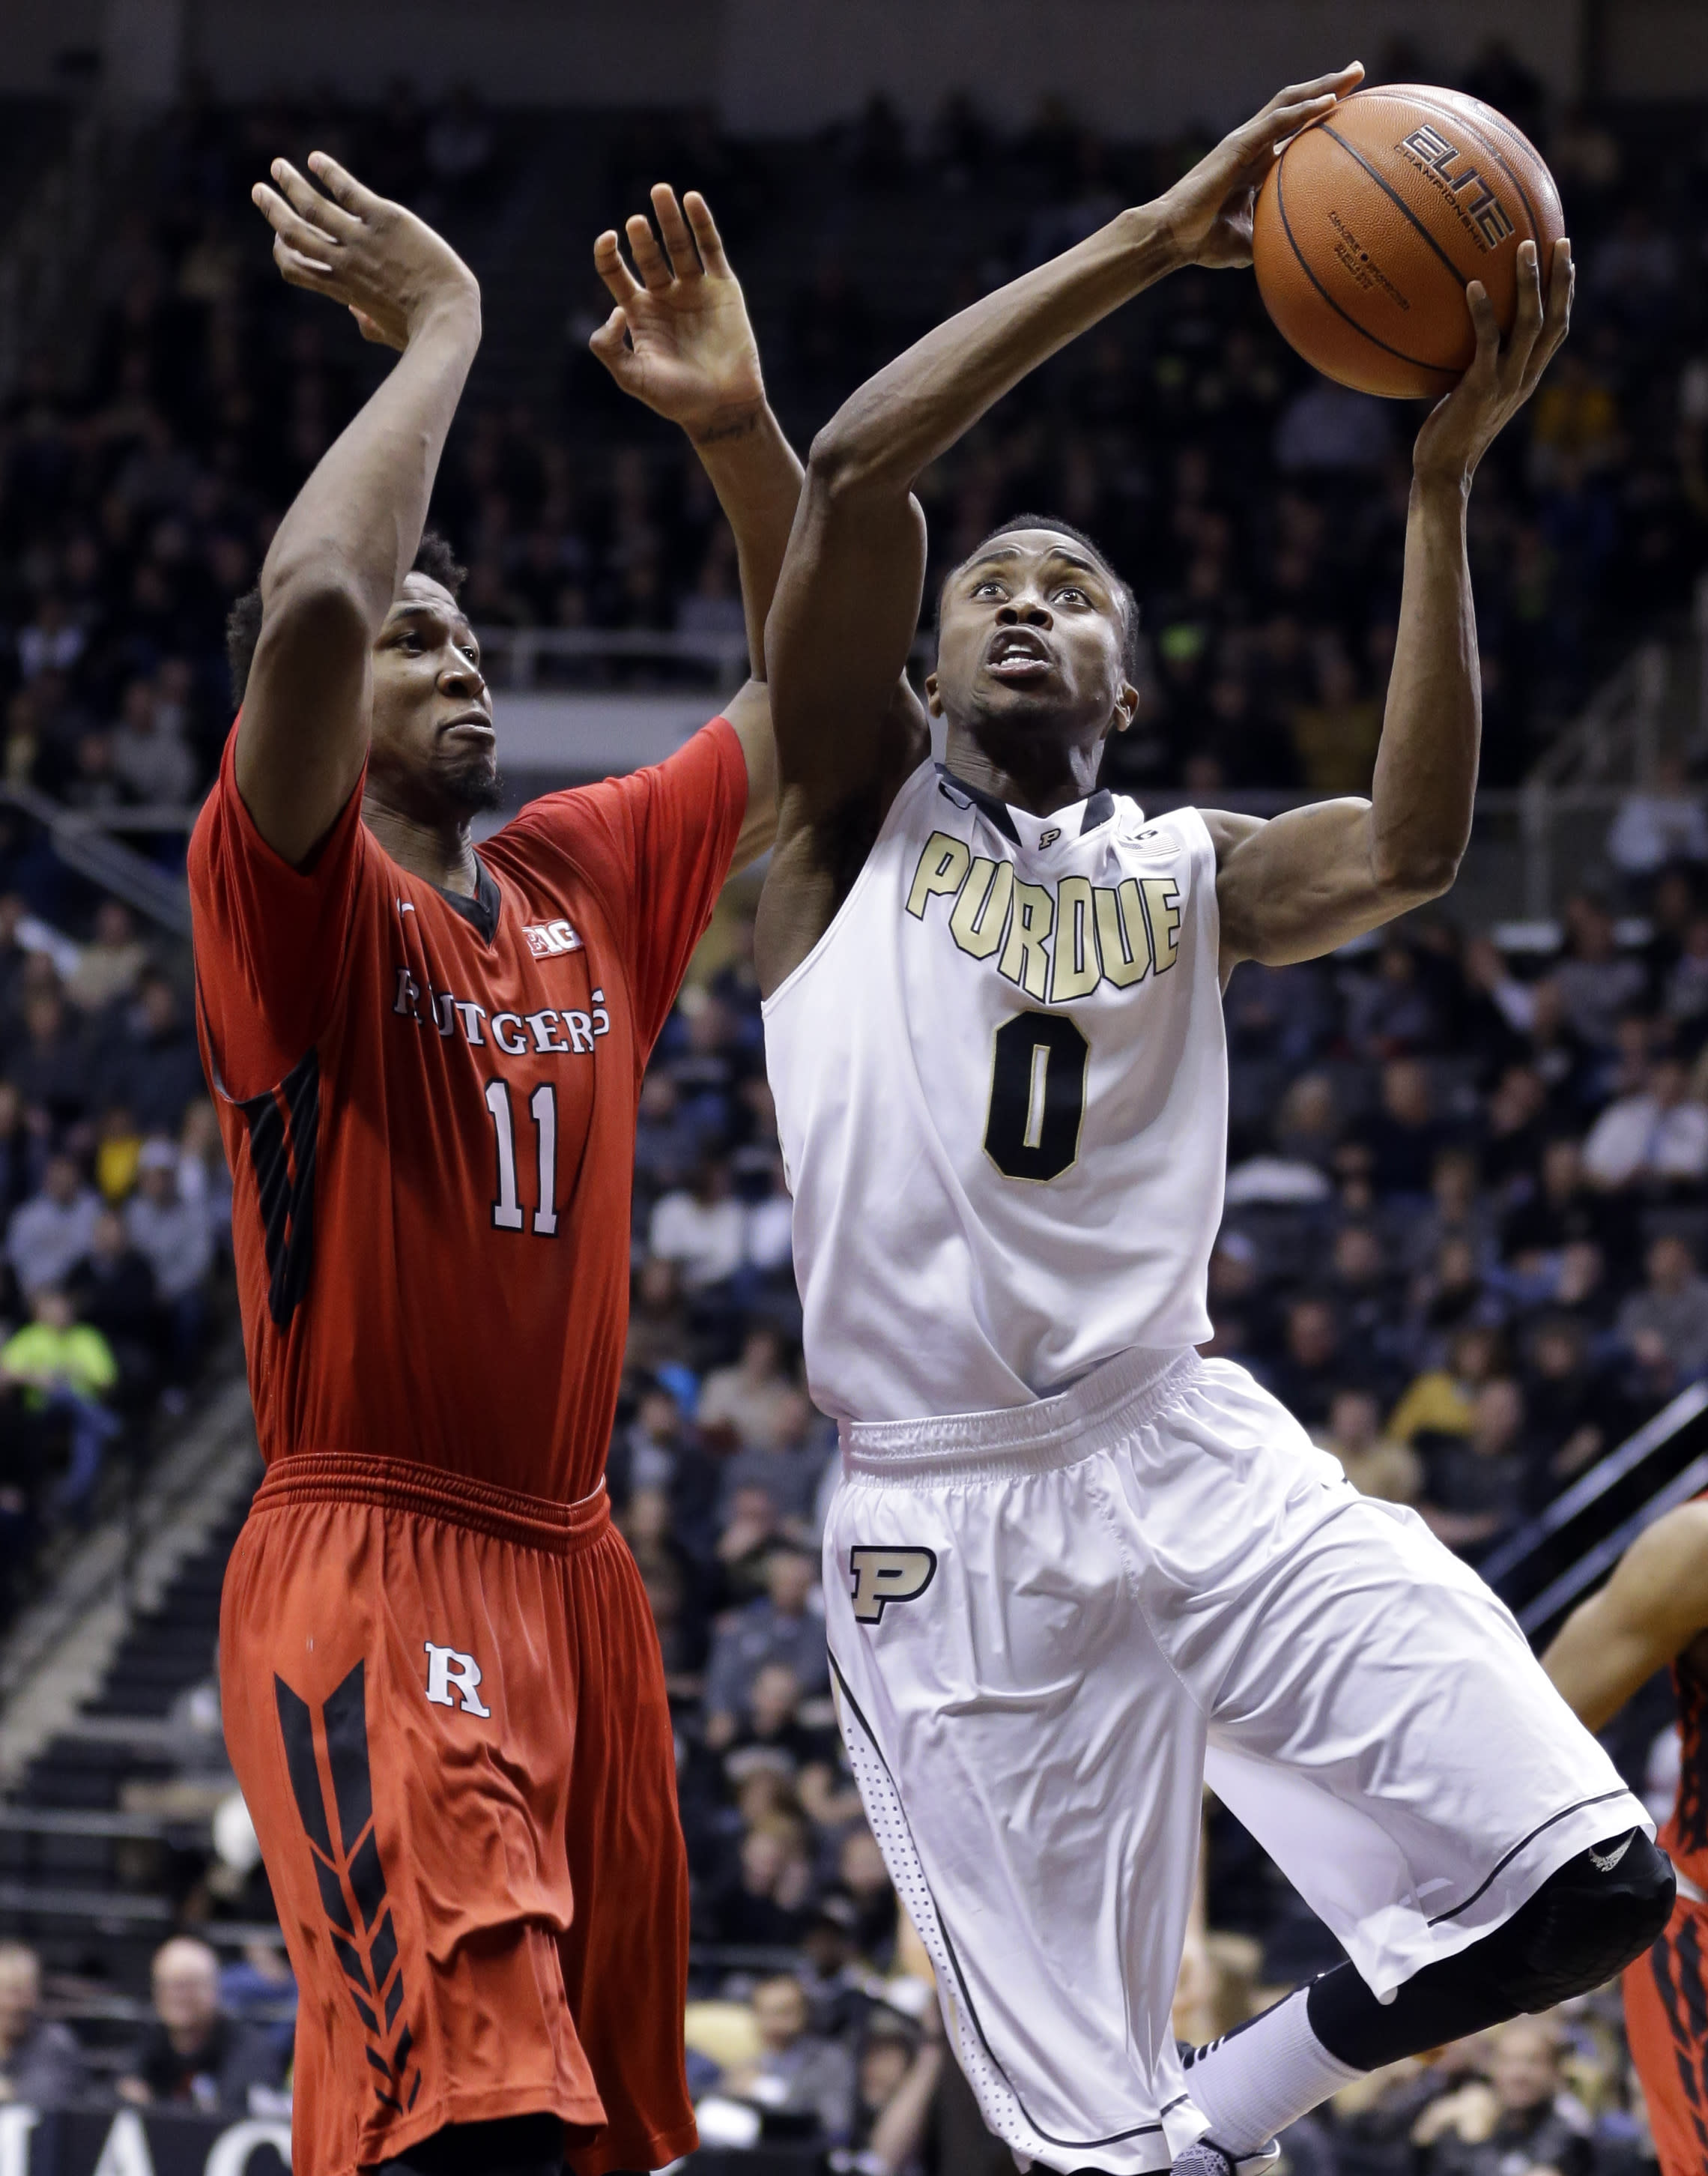 Smotherman's career night lifts Purdue over Rutgers 92-85